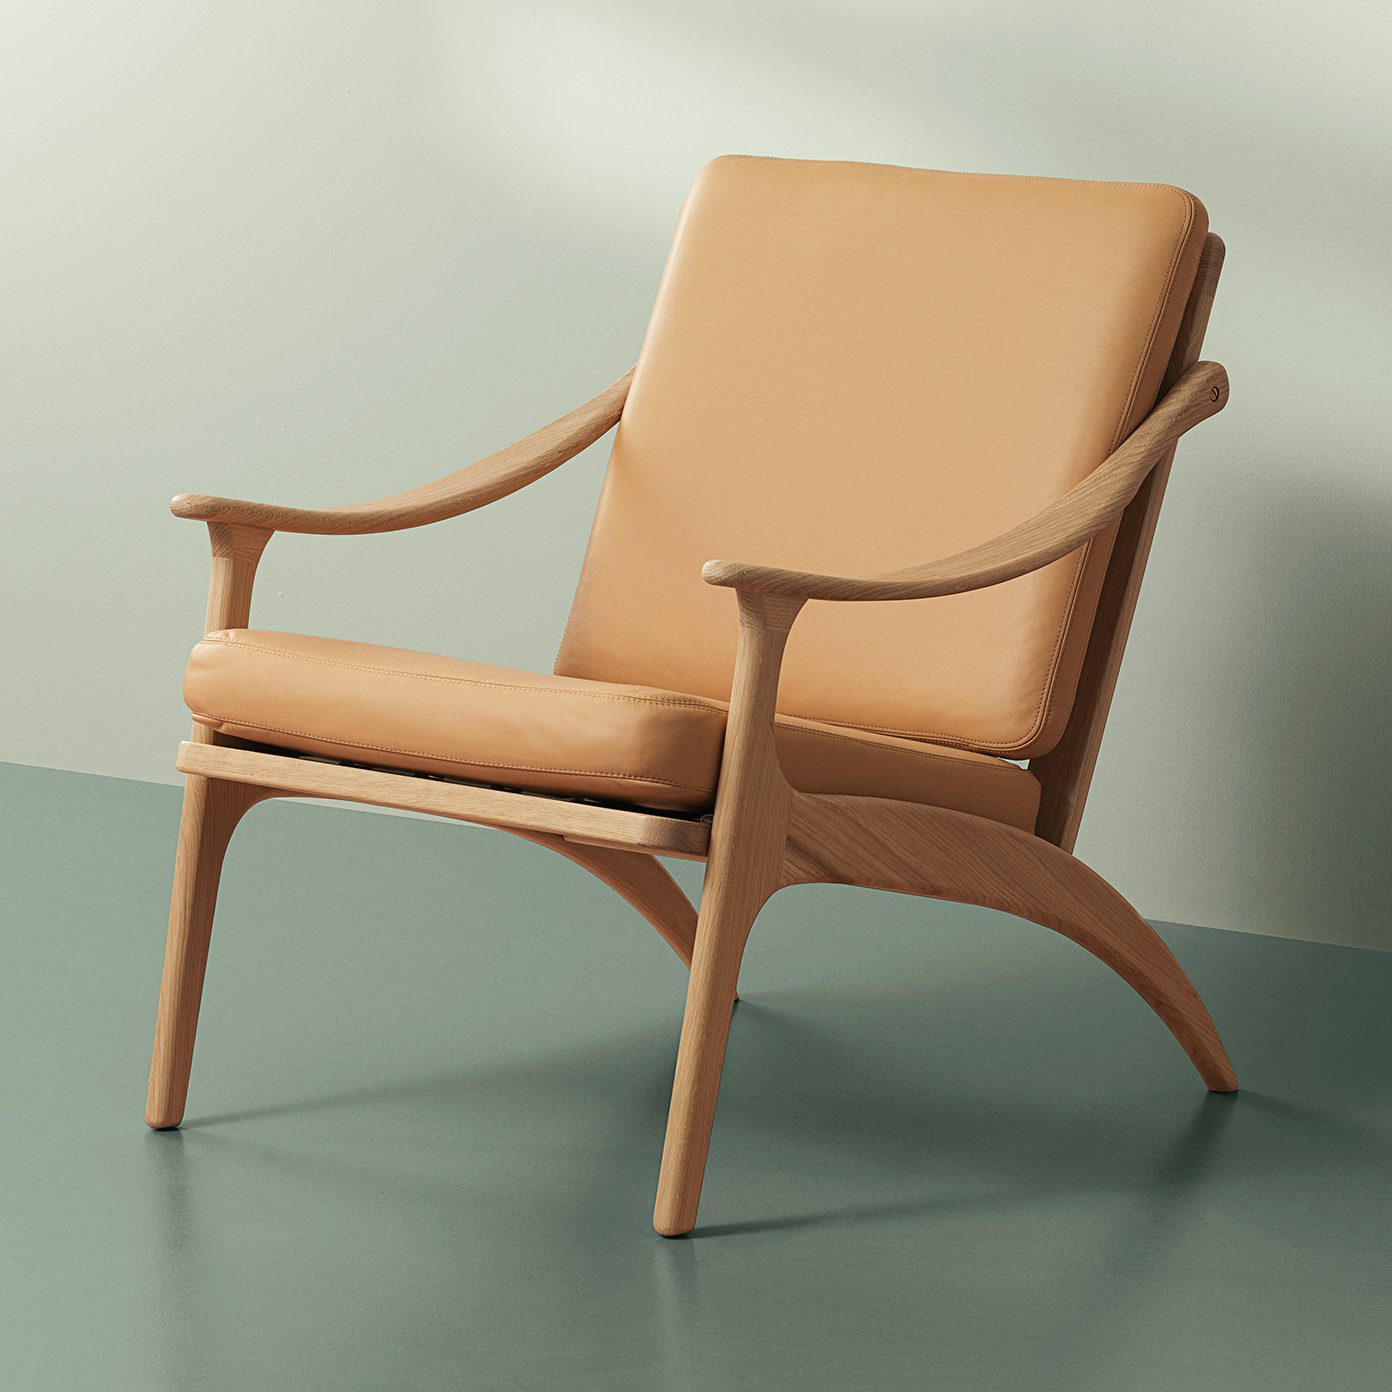 leanback lounger chairs swing chair online olx warm nordic lean back house of arne hovmand olsen